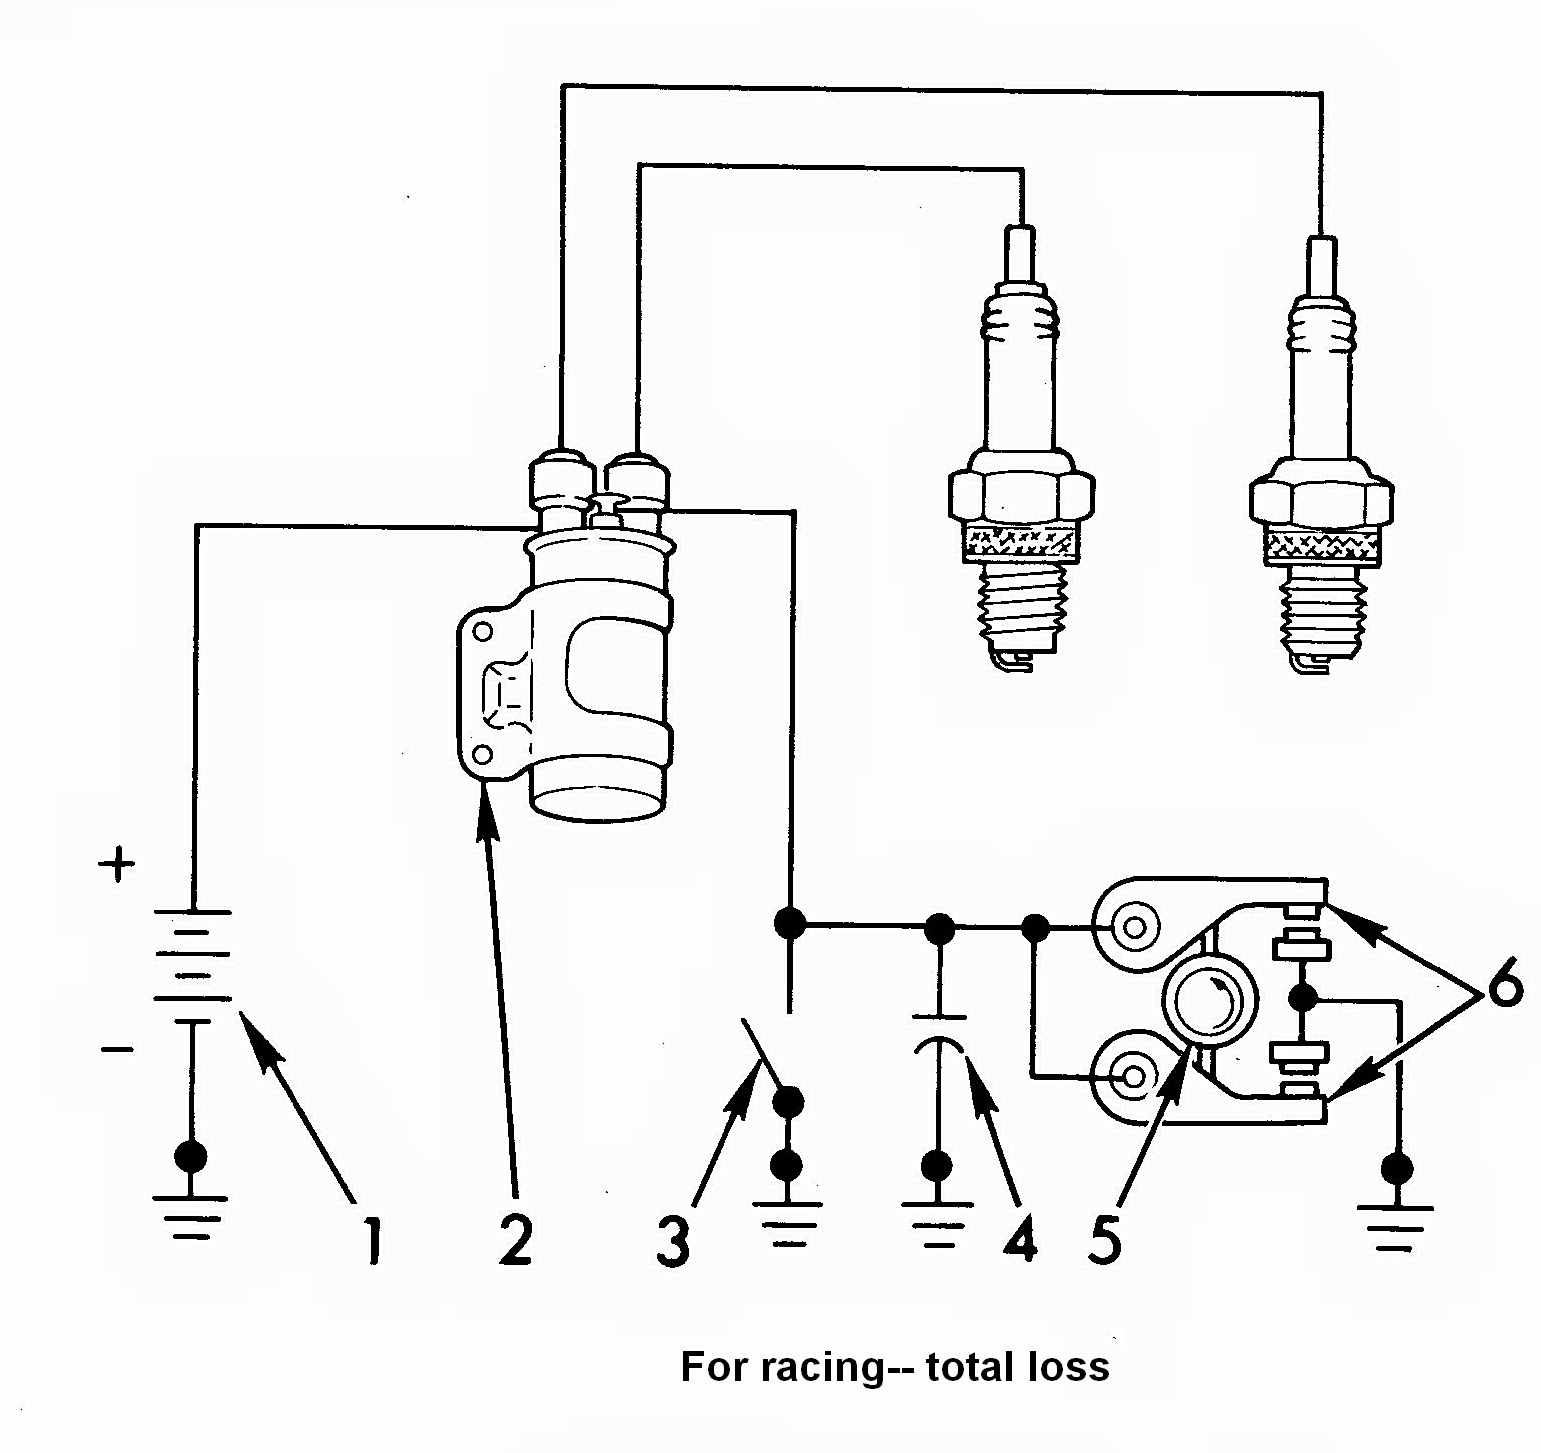 Points with dualfire coil dia only ignition coil wiring diagram points circuit and schematics diagram points and condenser wiring diagram at crackthecode.co